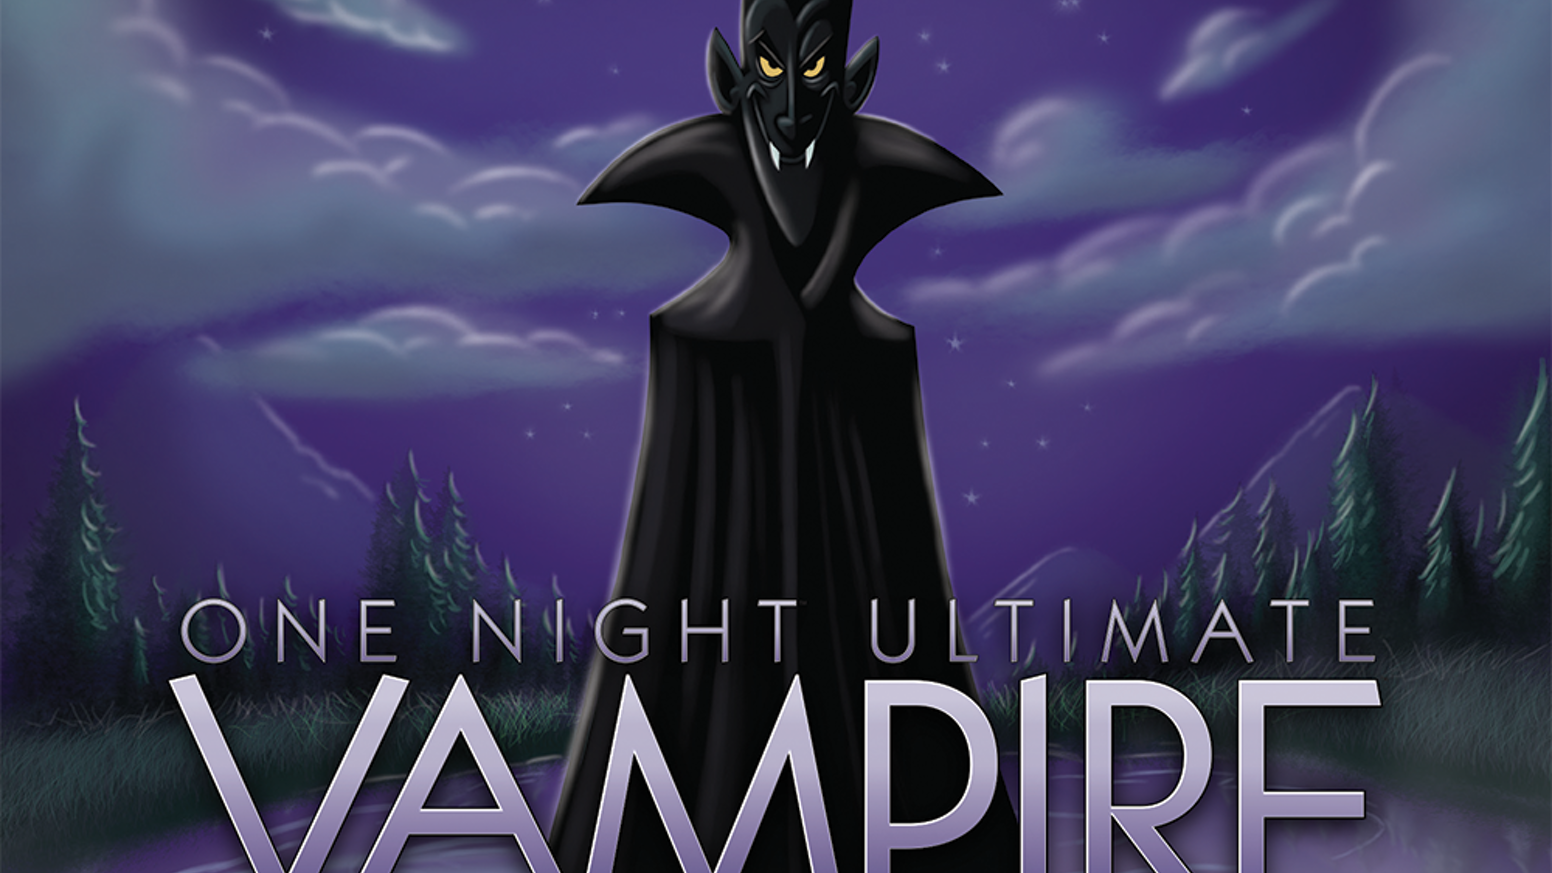 A prequel to One Night Ultimate Werewolf w/ Vampires, Assassins and more. 14 new roles. Stand alone or mix with other One Night games.